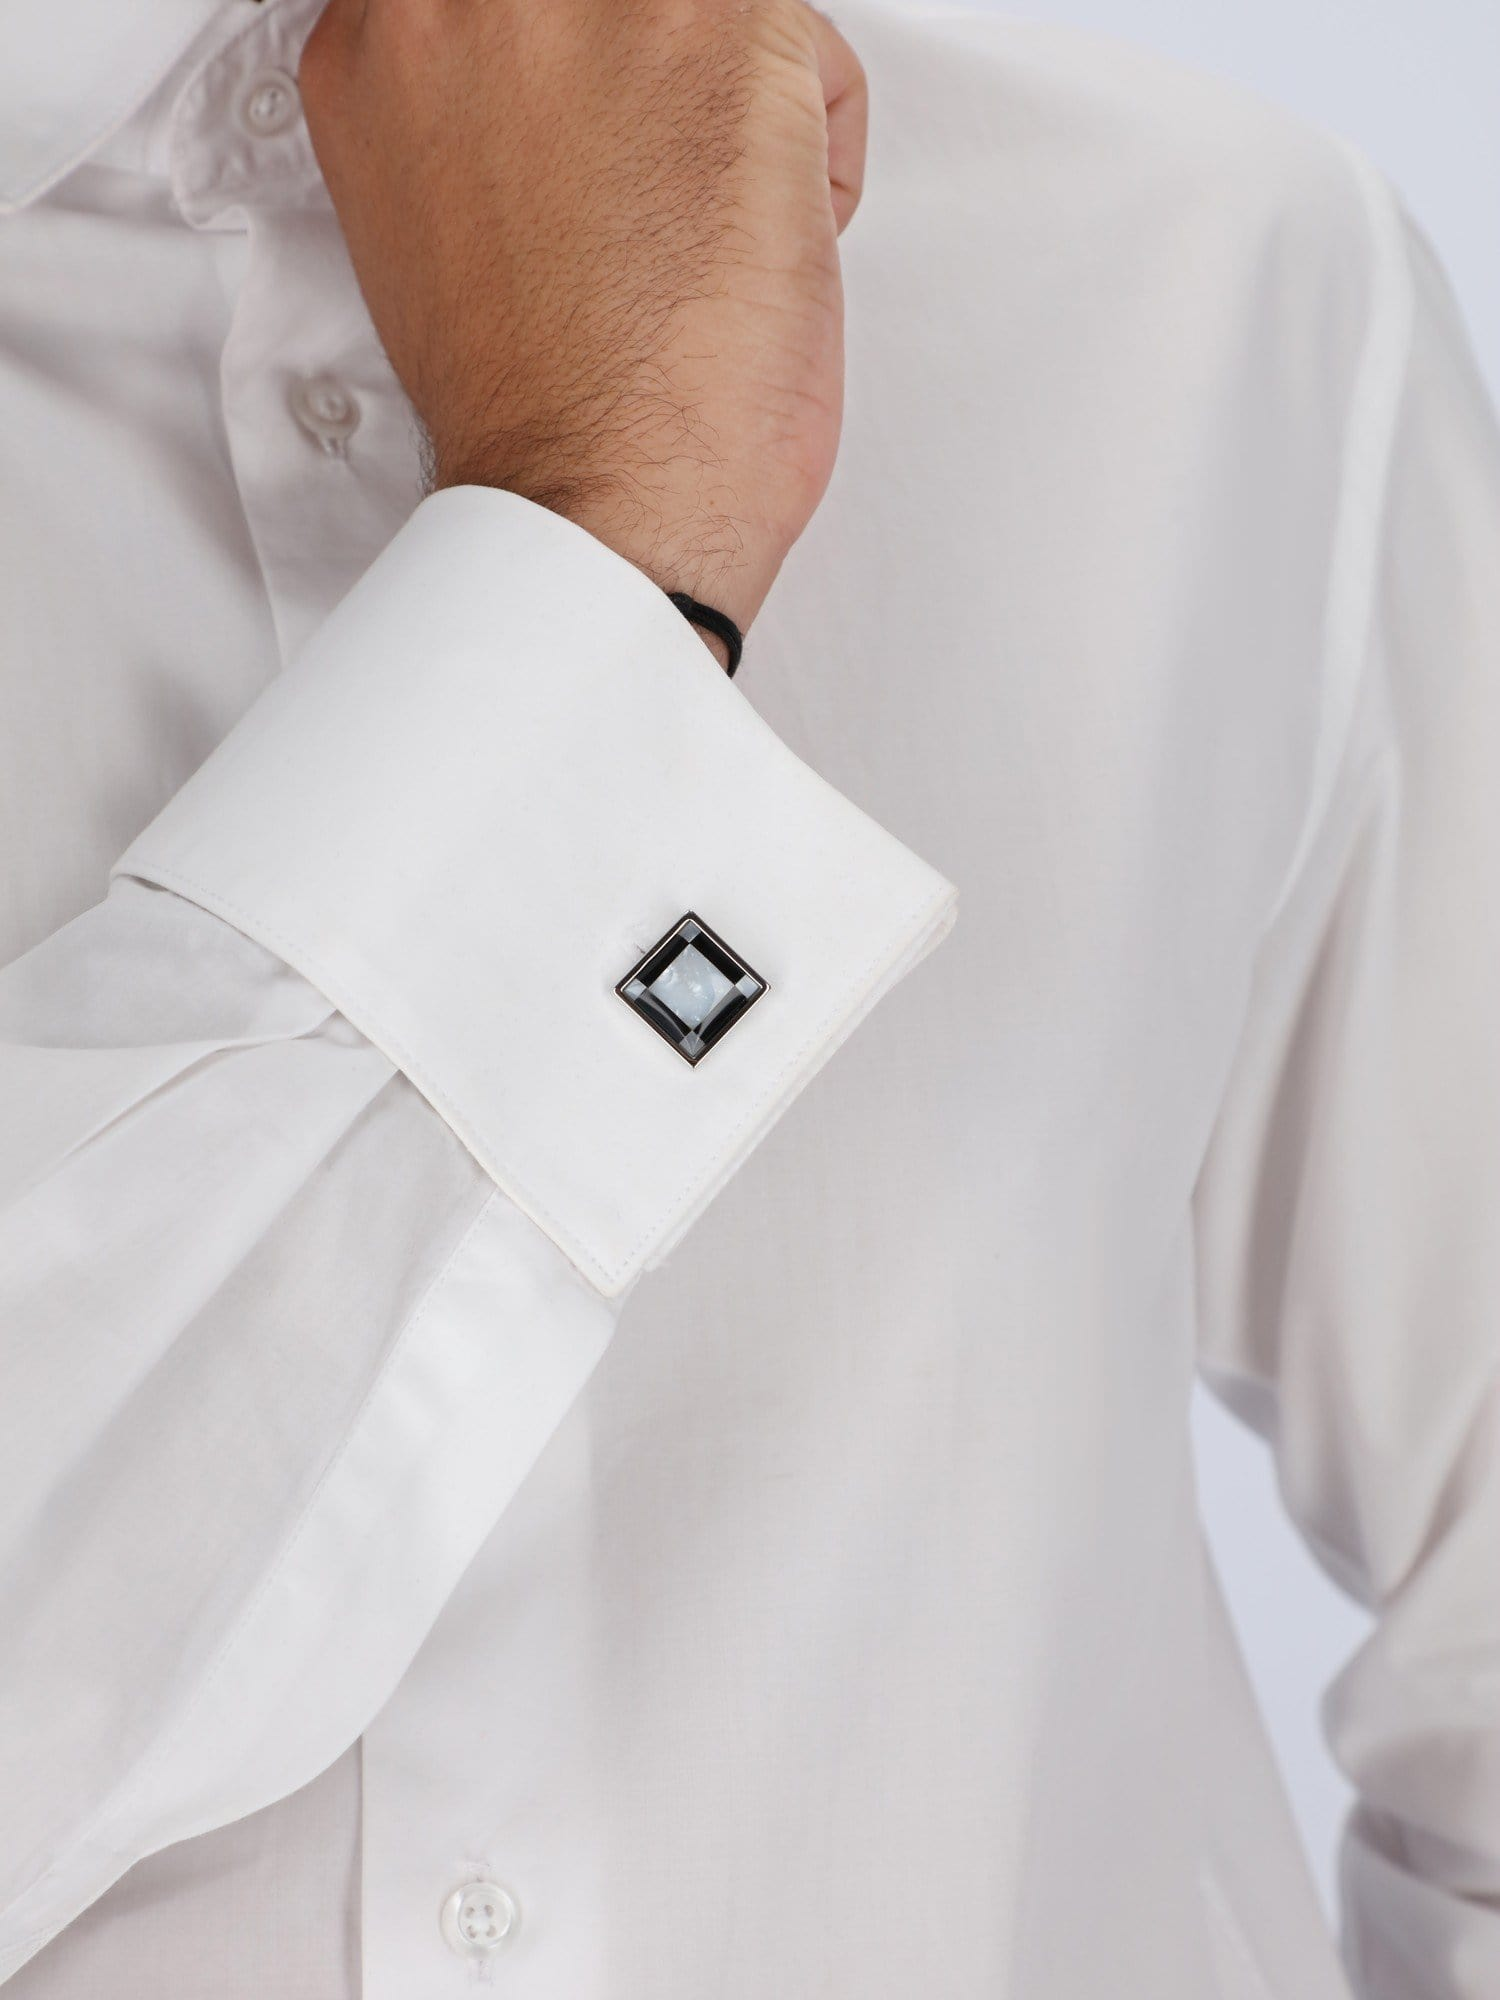 Daniel Hechter Other Accessories Black / Os Black & White Check Square Cufflinks